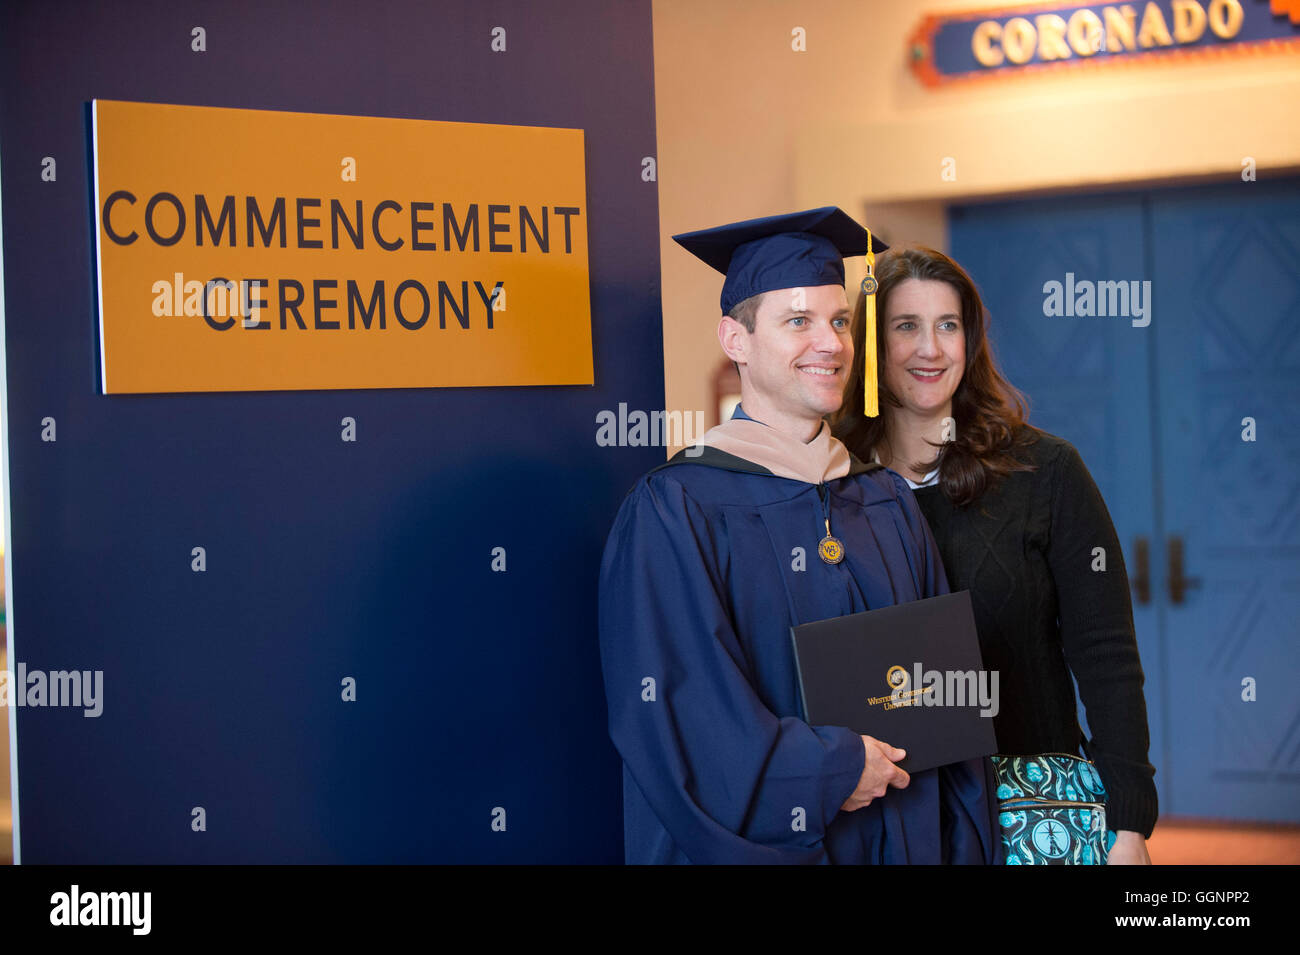 Graduate of Western Governors University poses with friend after commencement ceremony in Orlando, Florida. - Stock Image